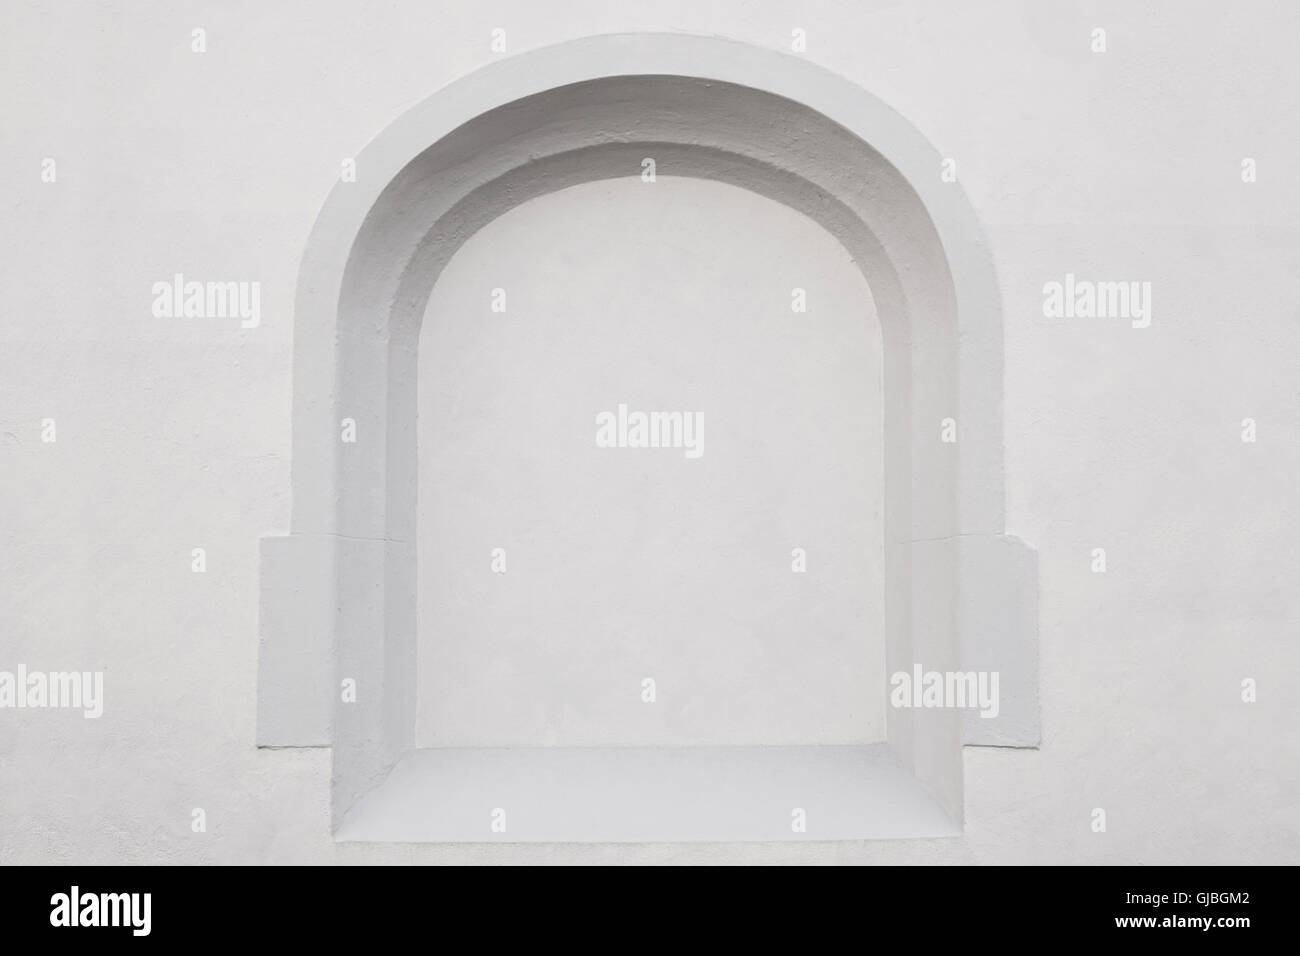 wall with alcove background Stock Photo: 114580594 - Alamy